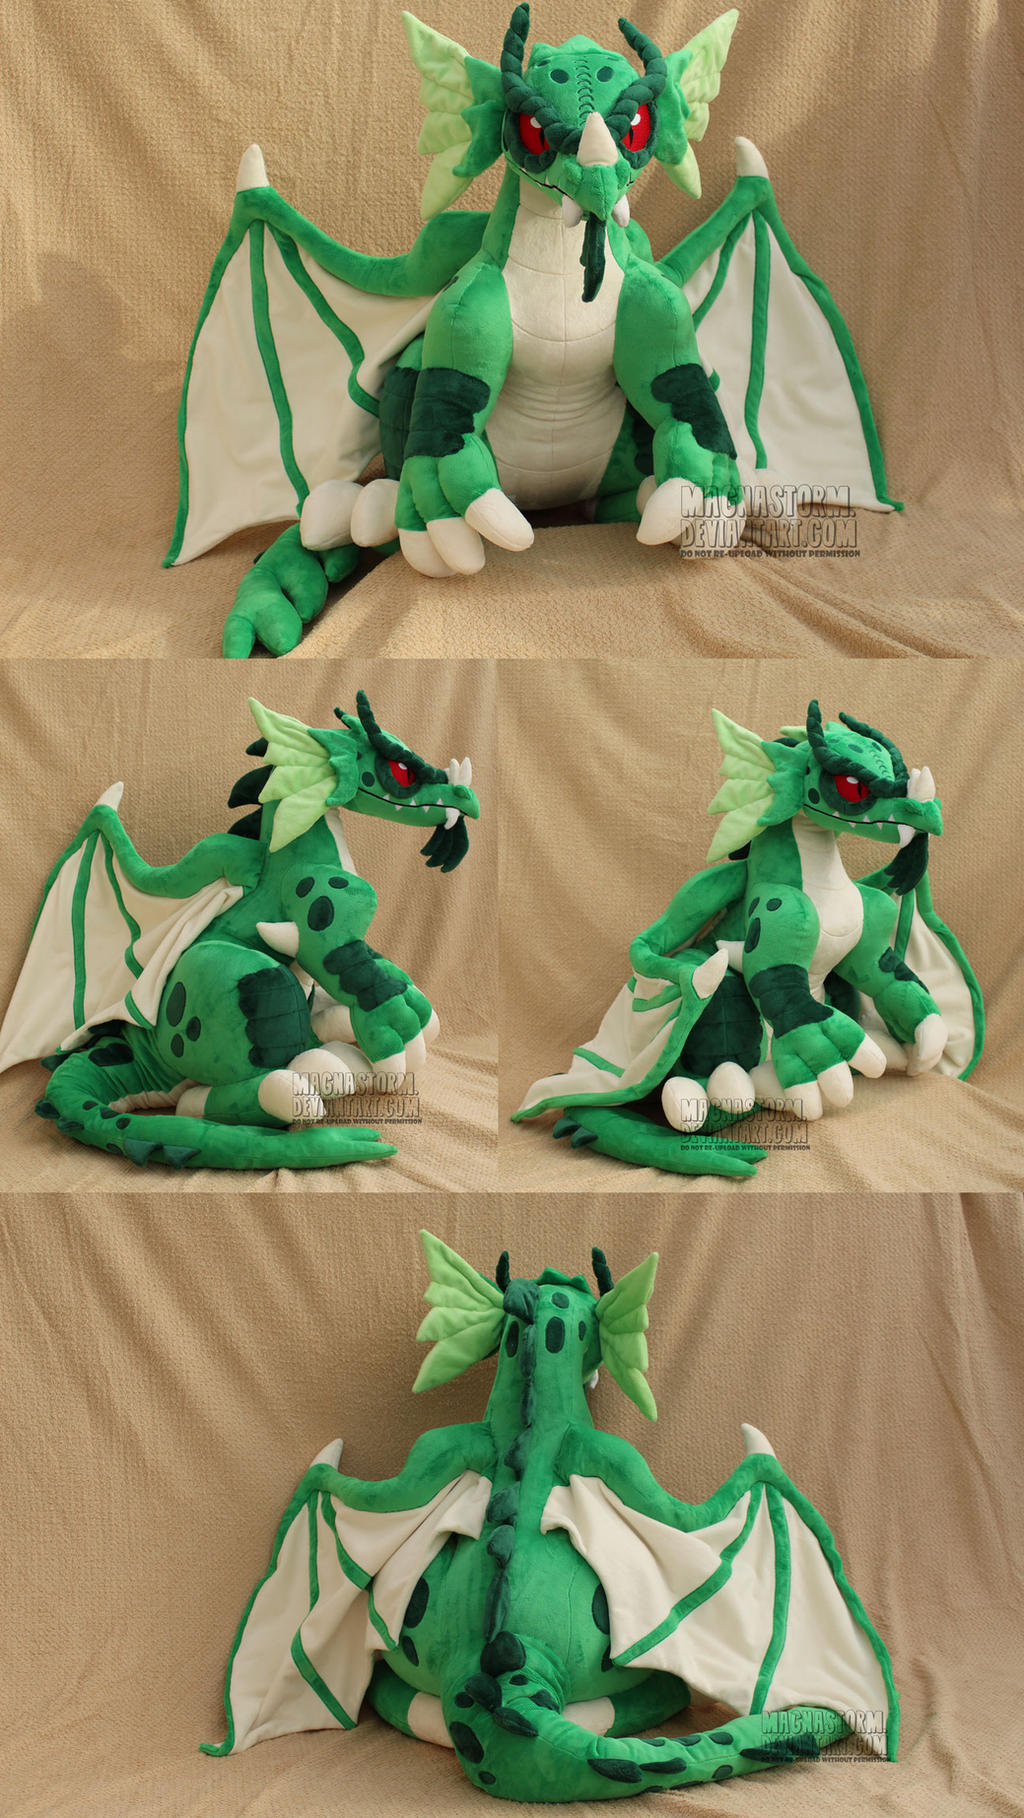 Green Dragon by MagnaStorm